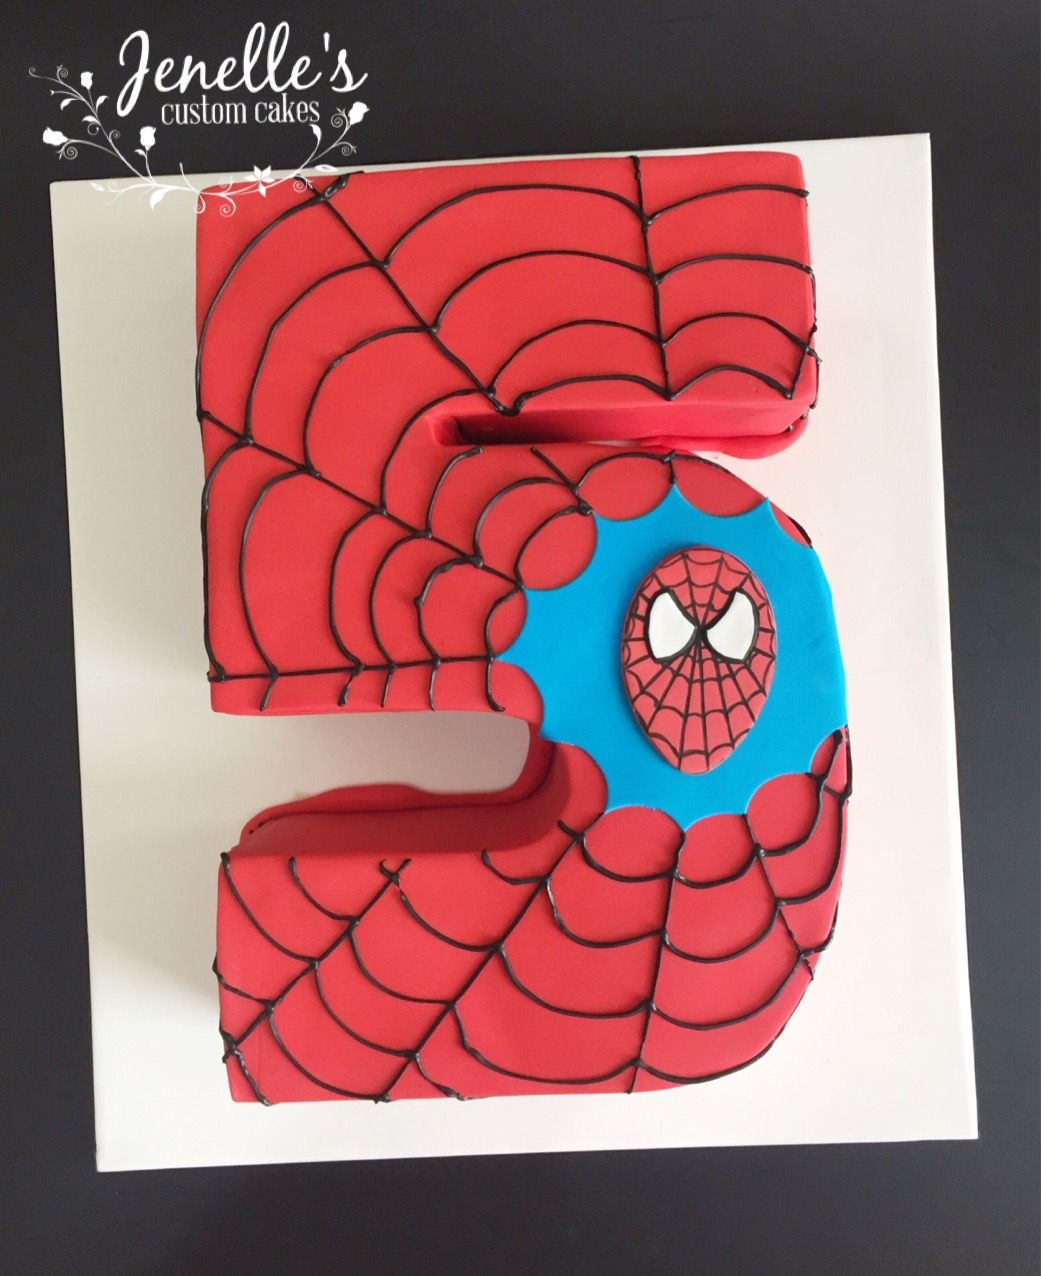 Number 5 Spiderman cake. By Jenelle's Custom Cakes.